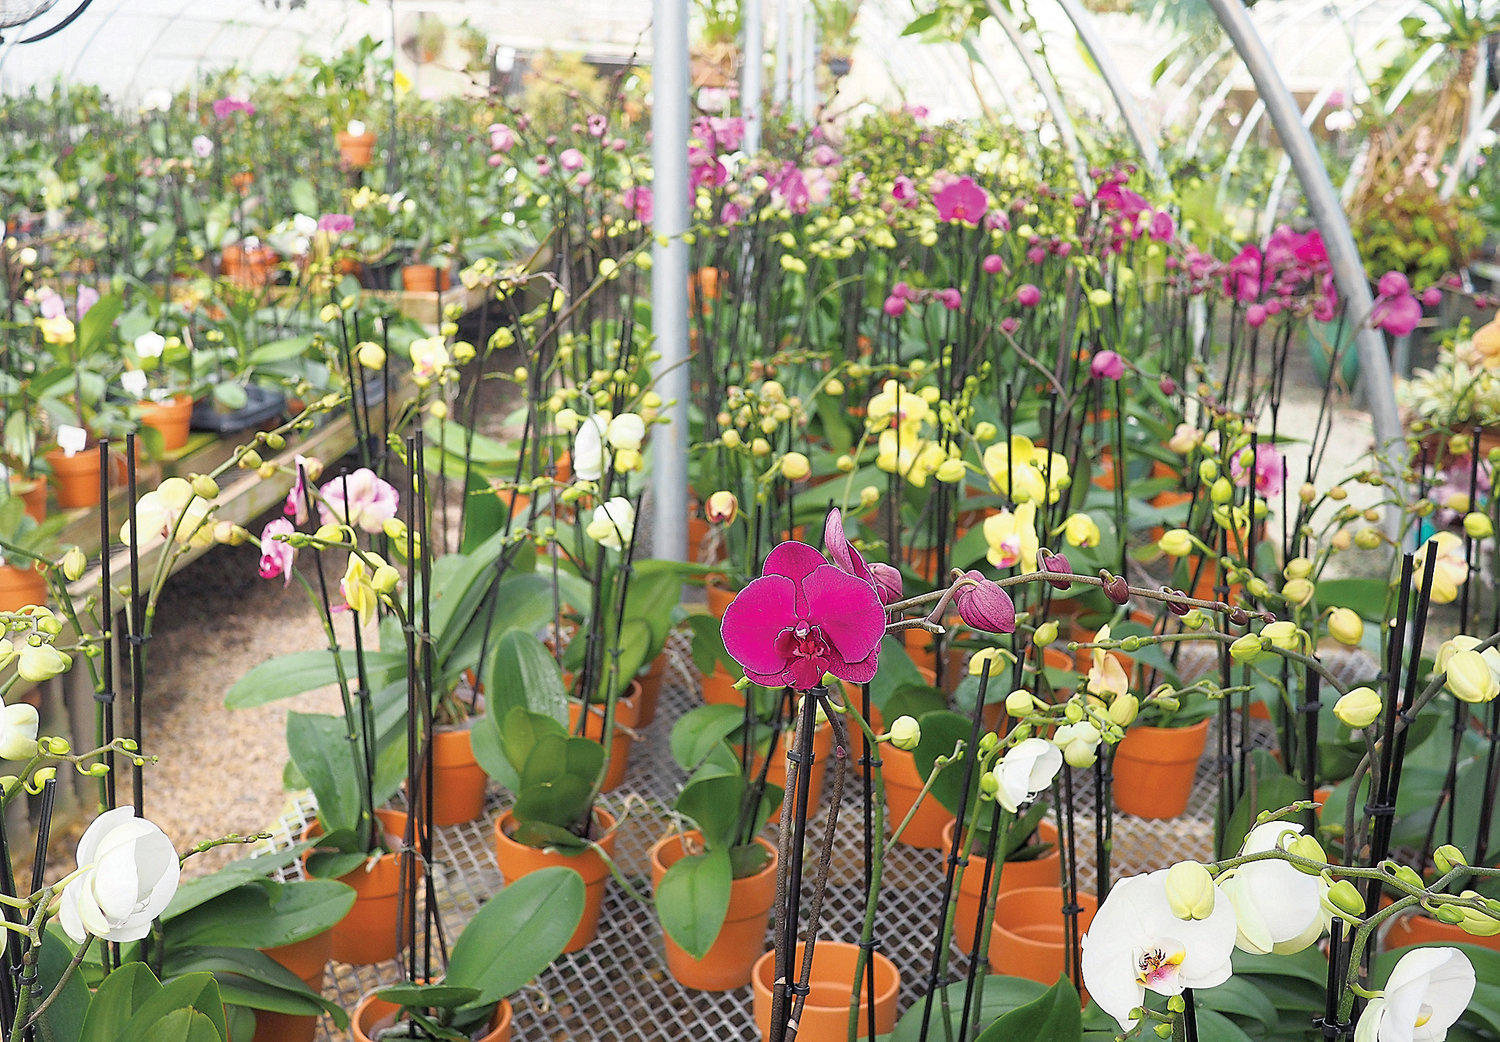 A sampling of orchids from the Orchid Gallery.